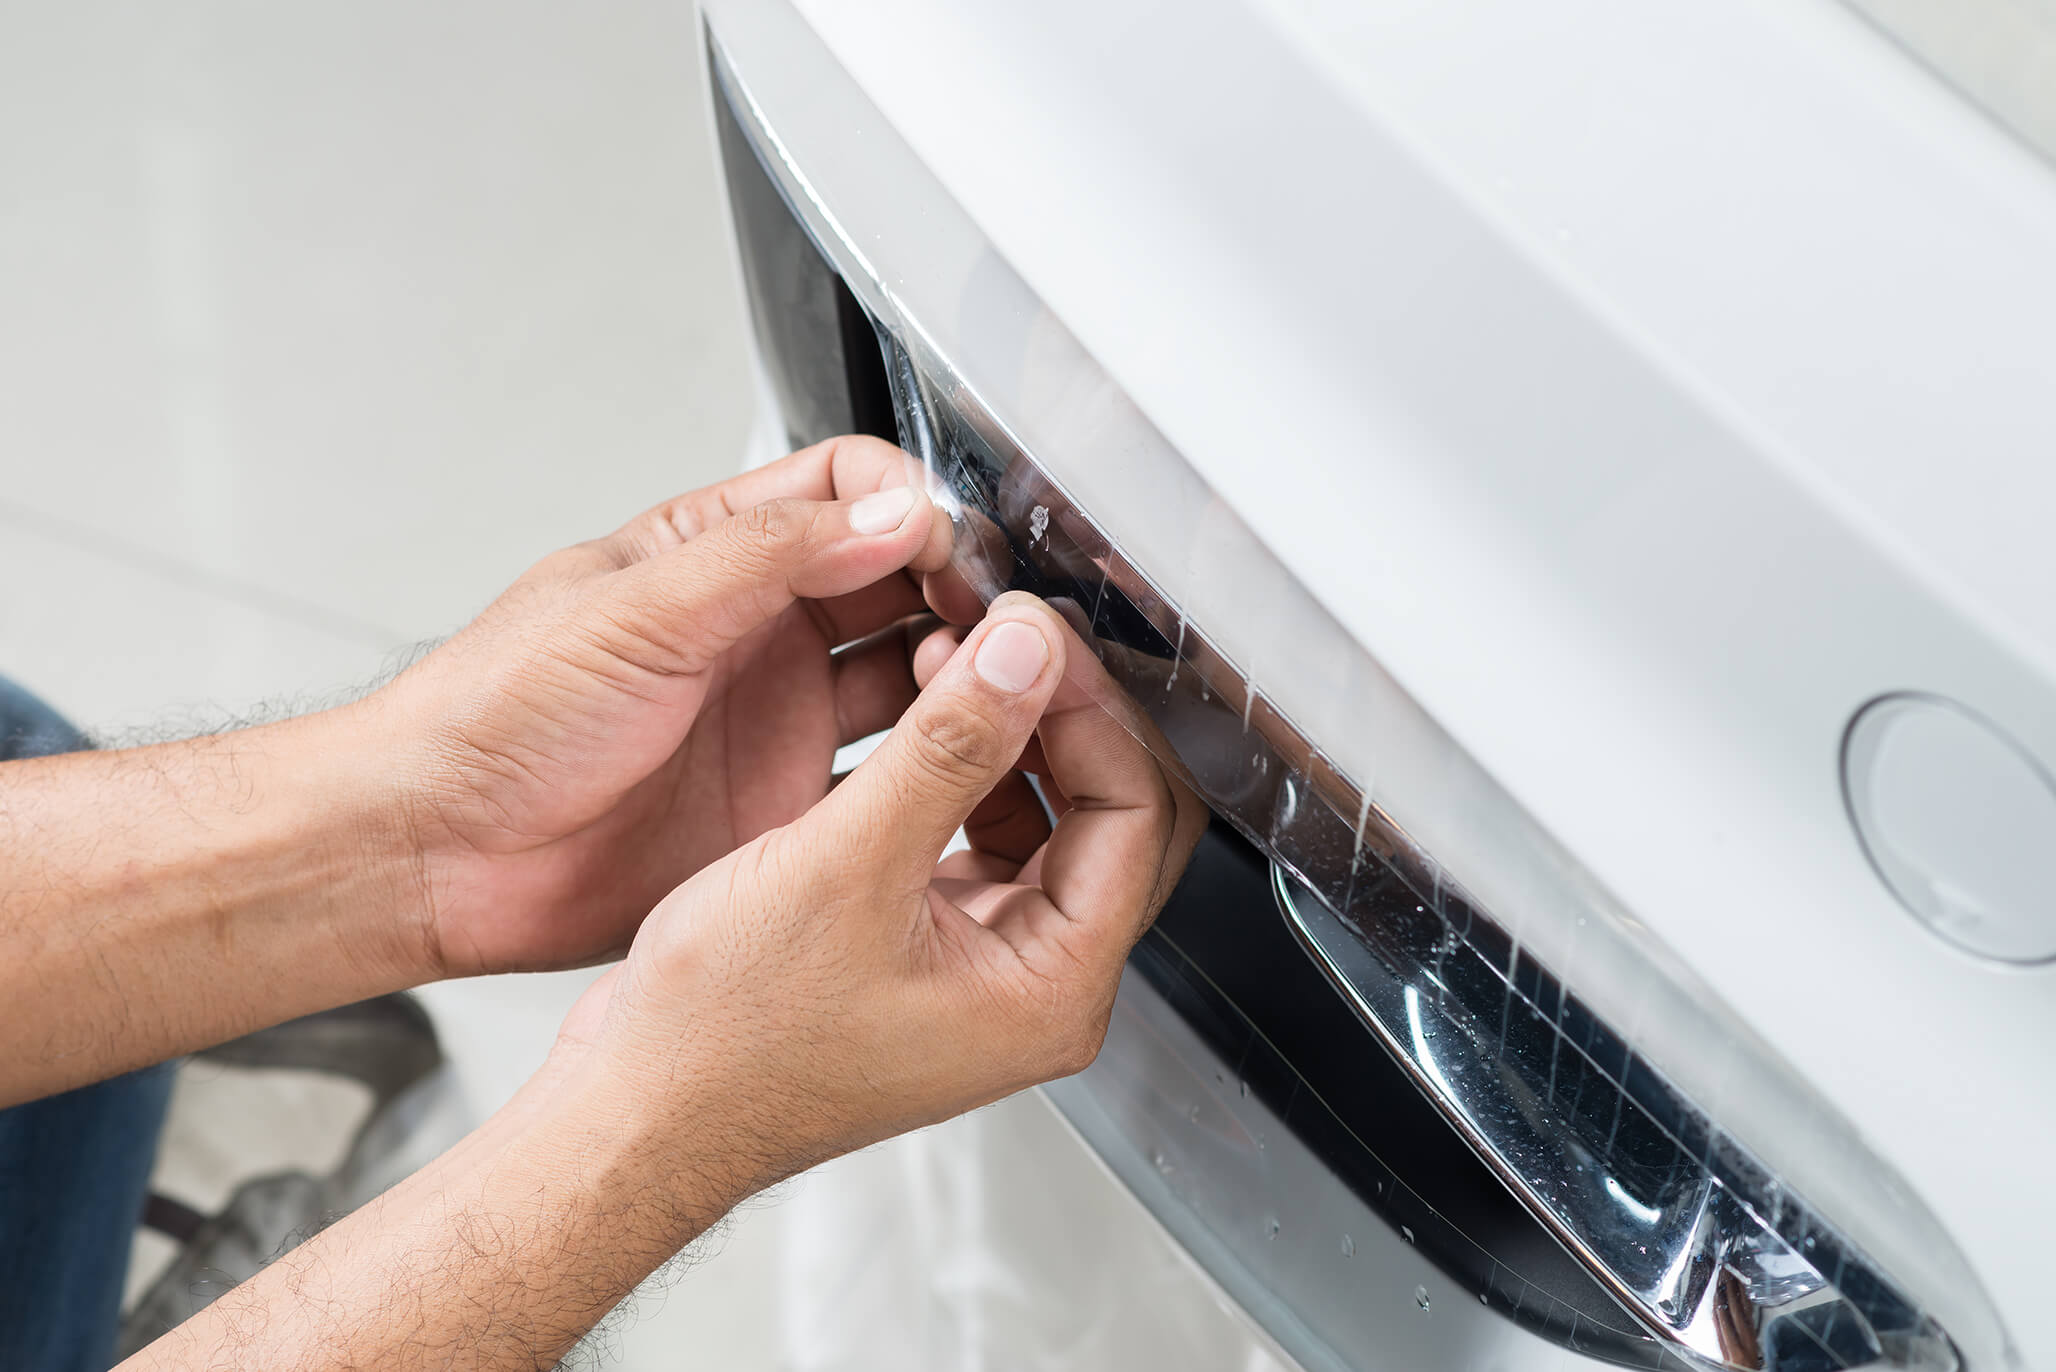 Protective film being applied on a car